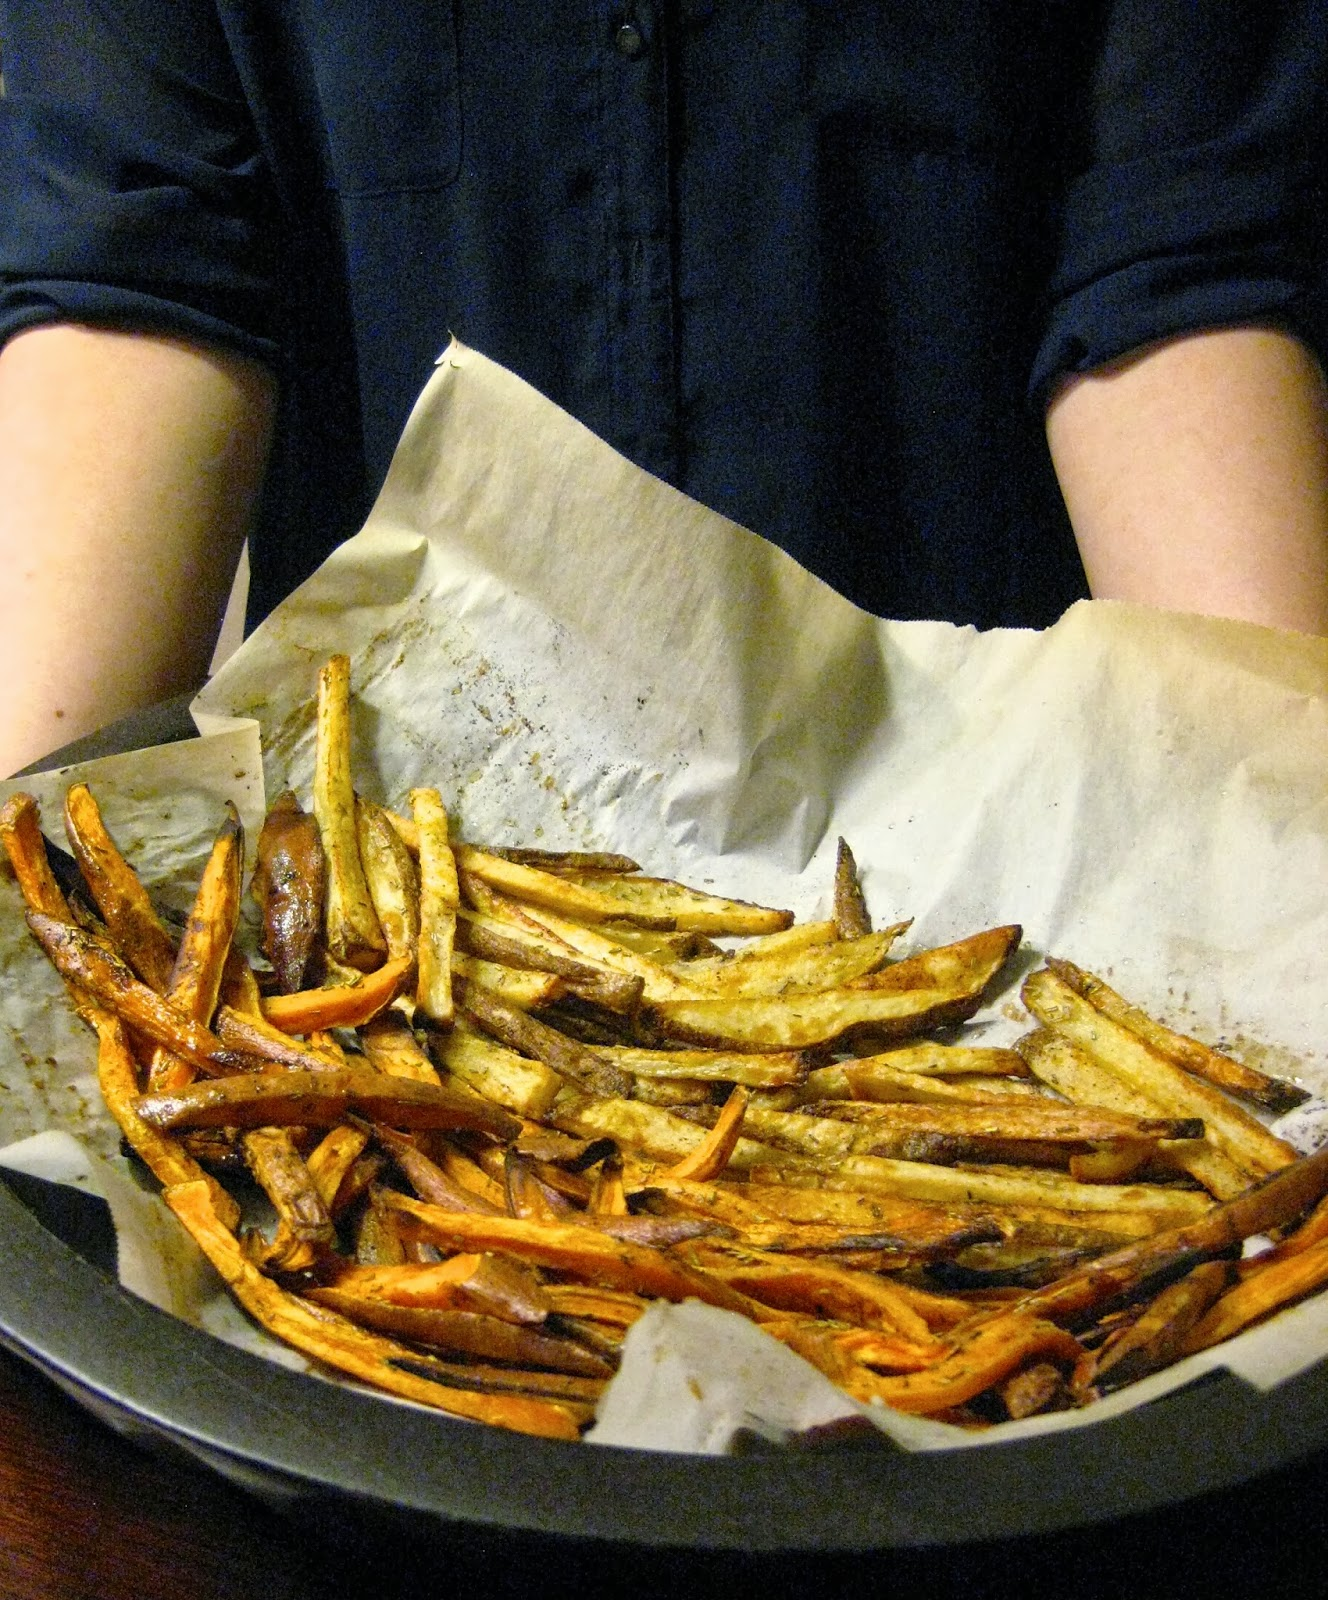 Jackson And Laguna Oven Baked Fries With Garlic Rosemary